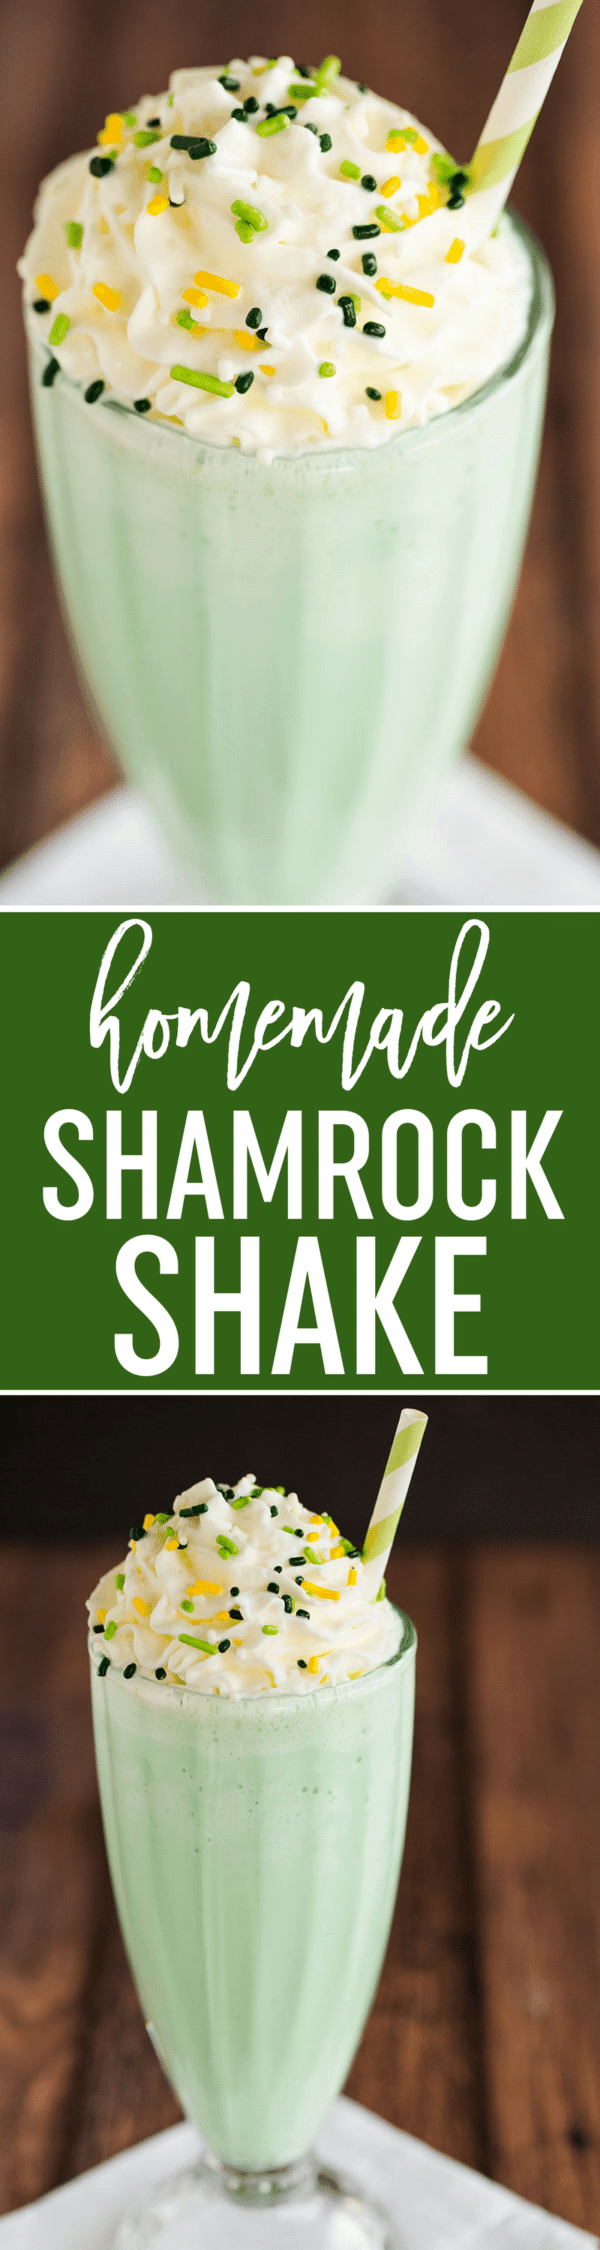 Shamrock Shake Recipe - A homemade spin on the famous St. Patrick's Day-inspired minty green milkshake from McDonald's.